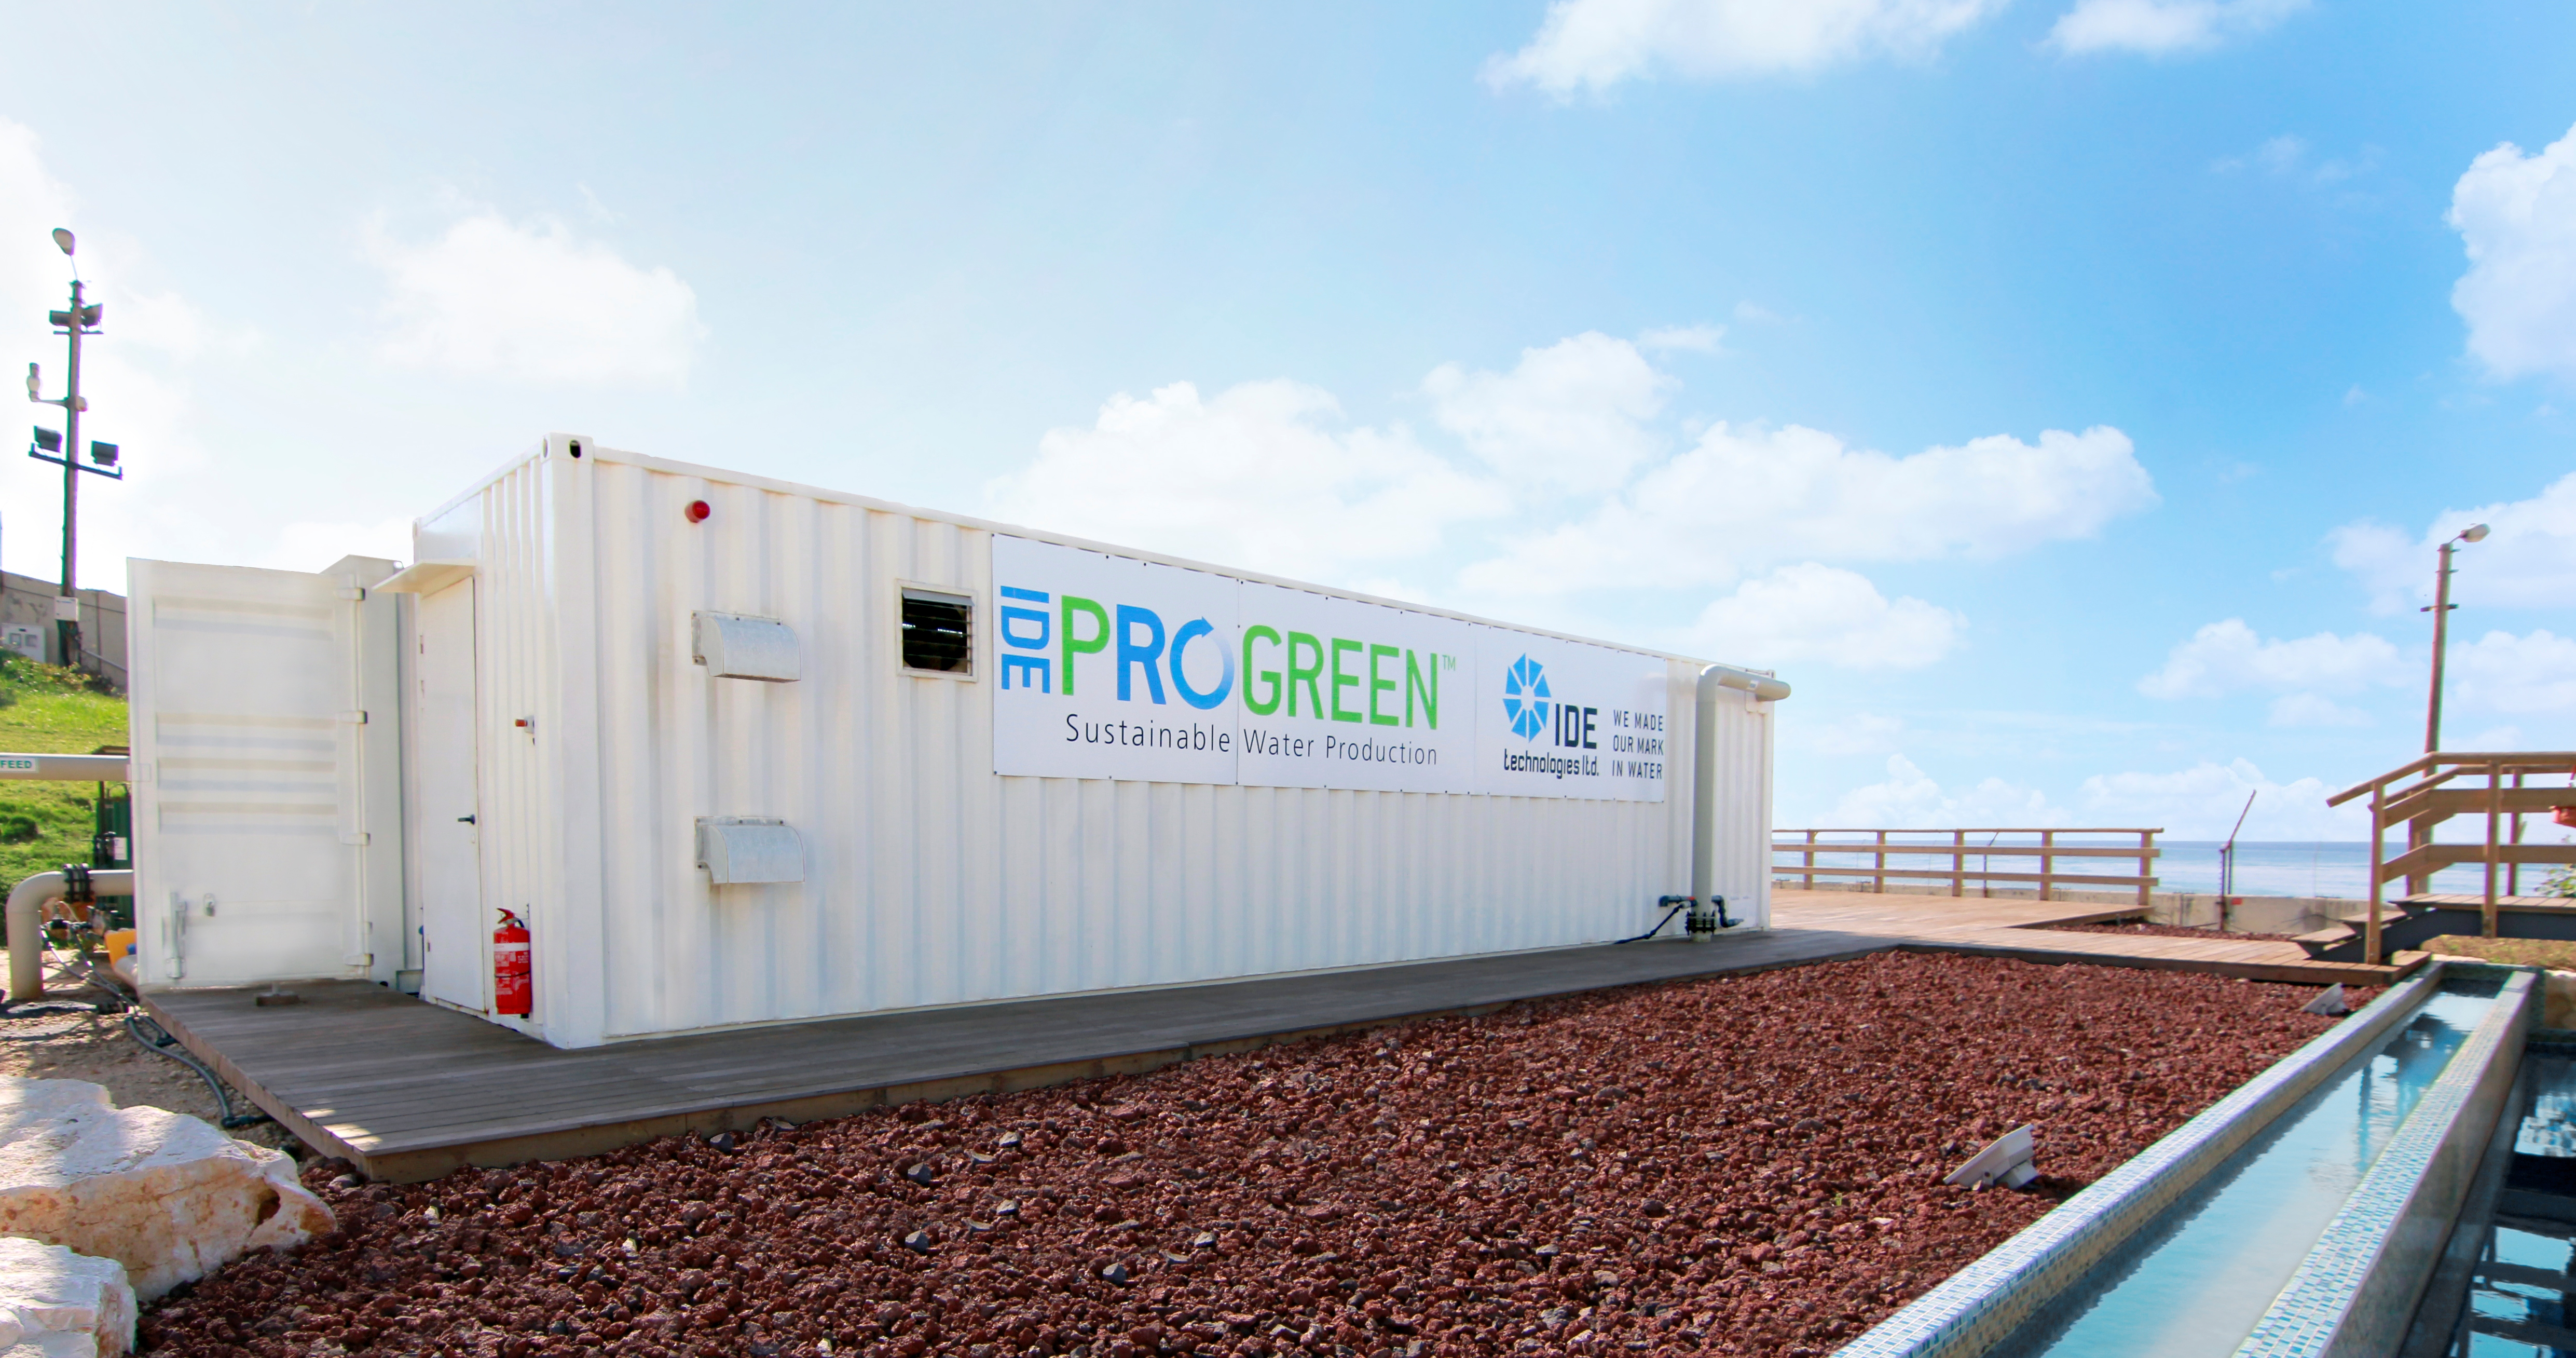 IDE PROGREEN™ – Chemical-Free Desalination Plants